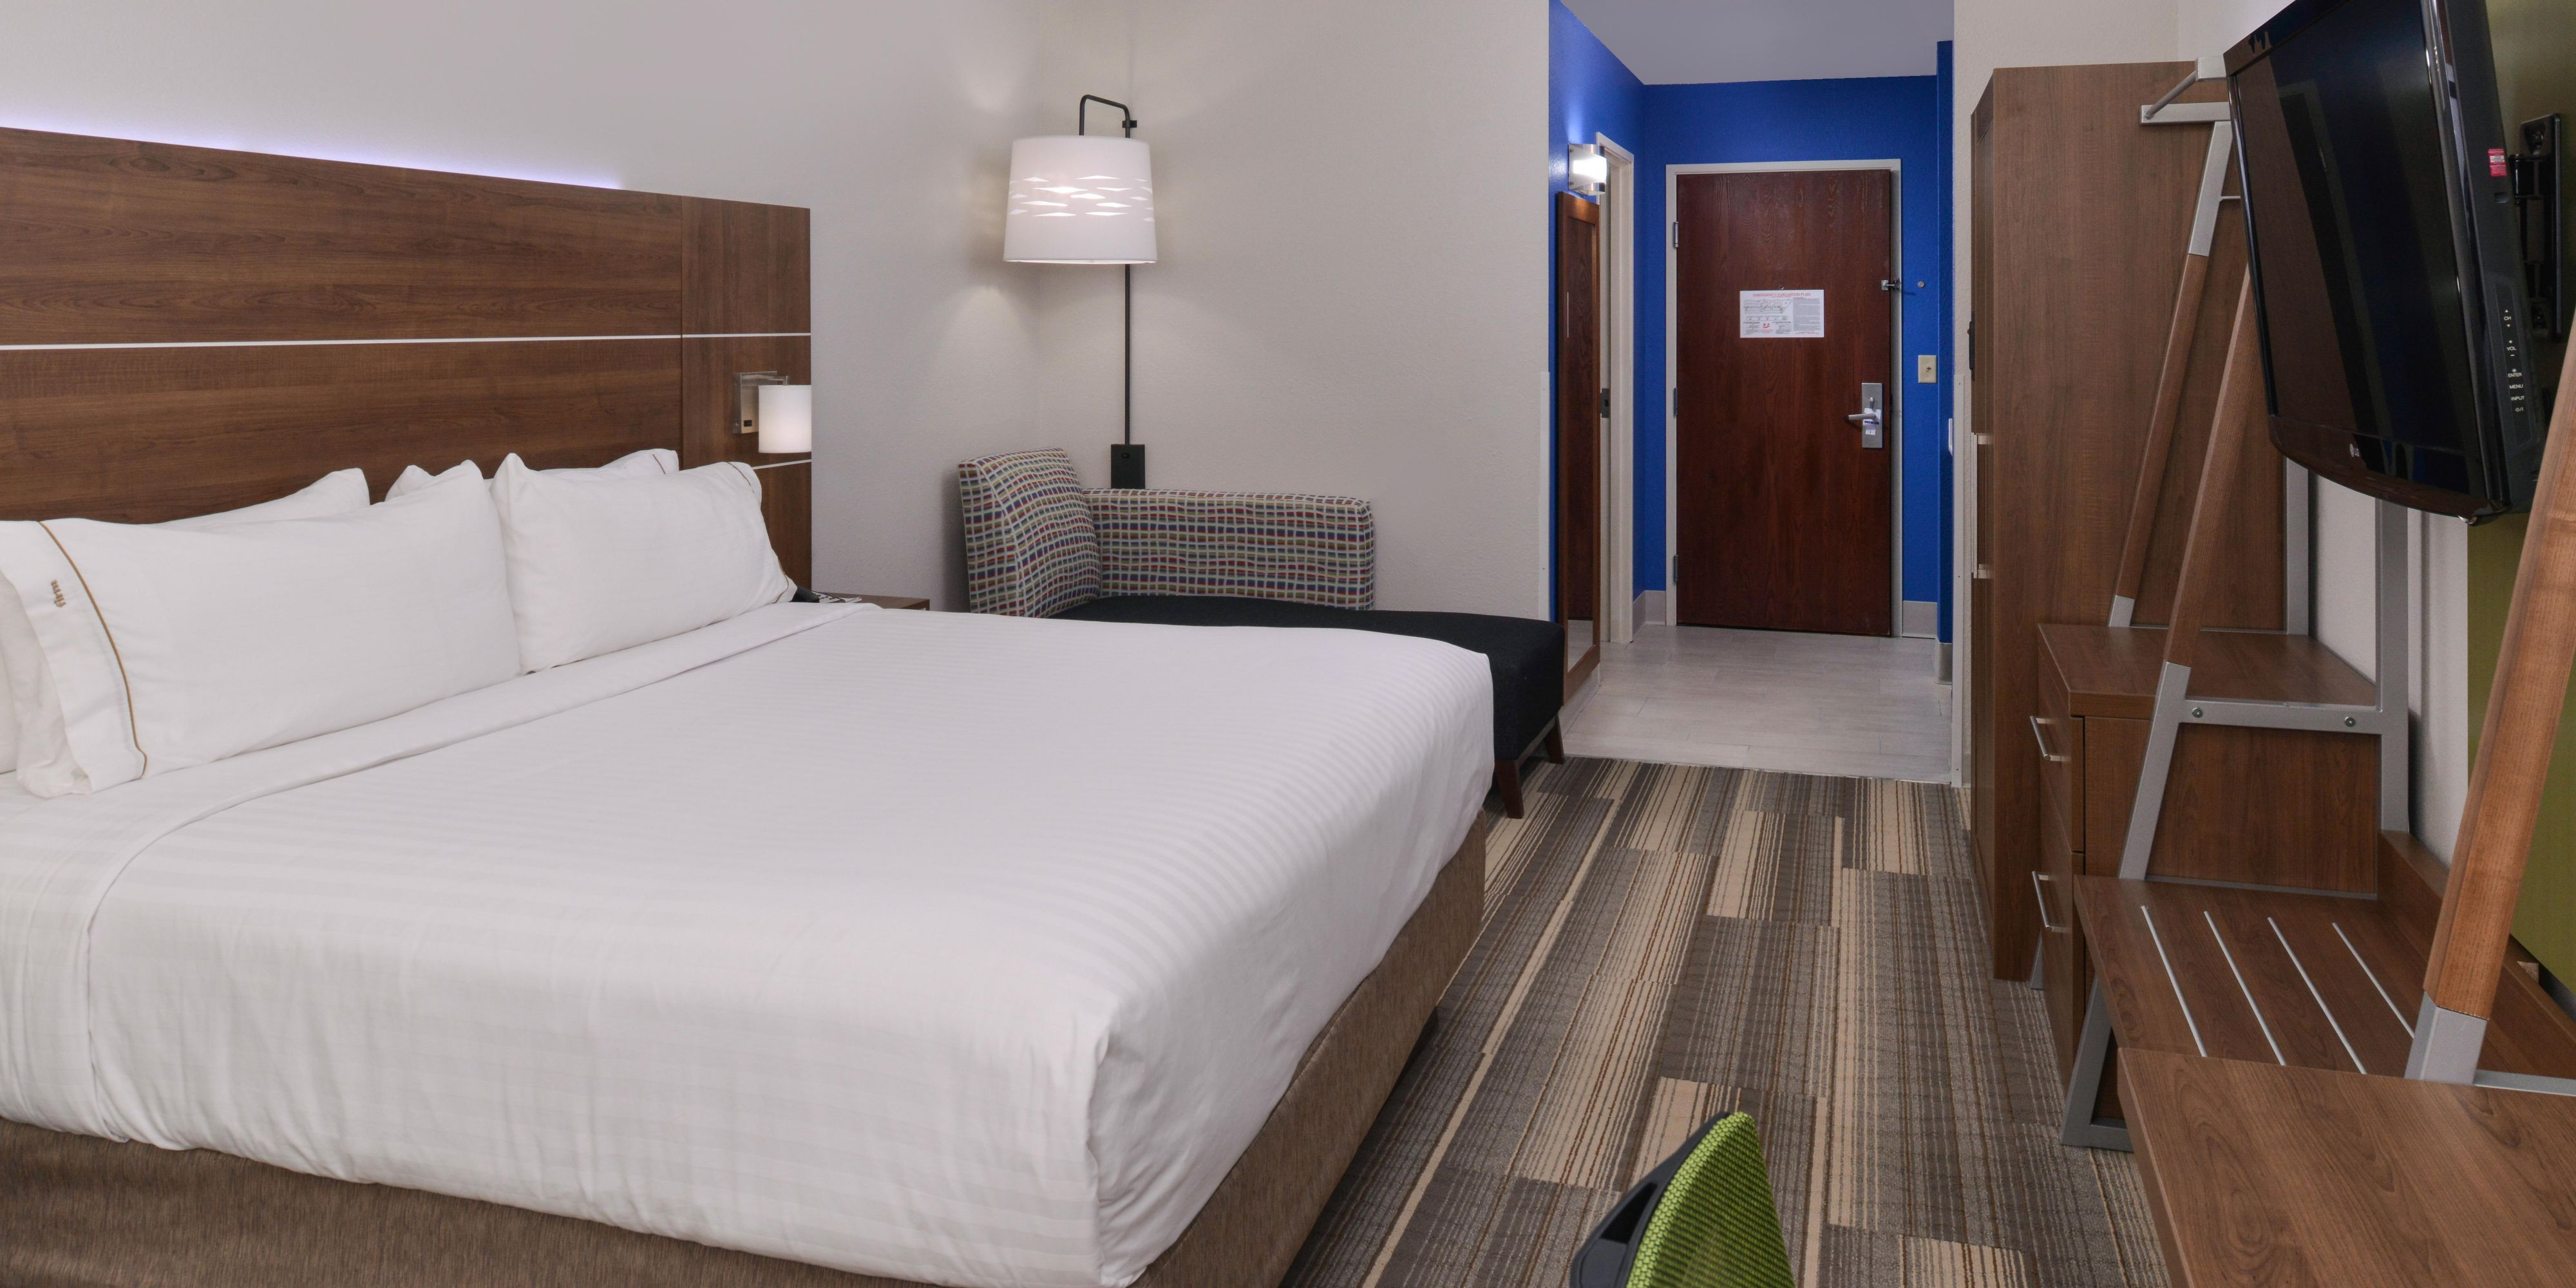 holiday inn express suites raleigh ne medical ctr area hotel holiday inn express and suites raleigh 4372069584 2x1